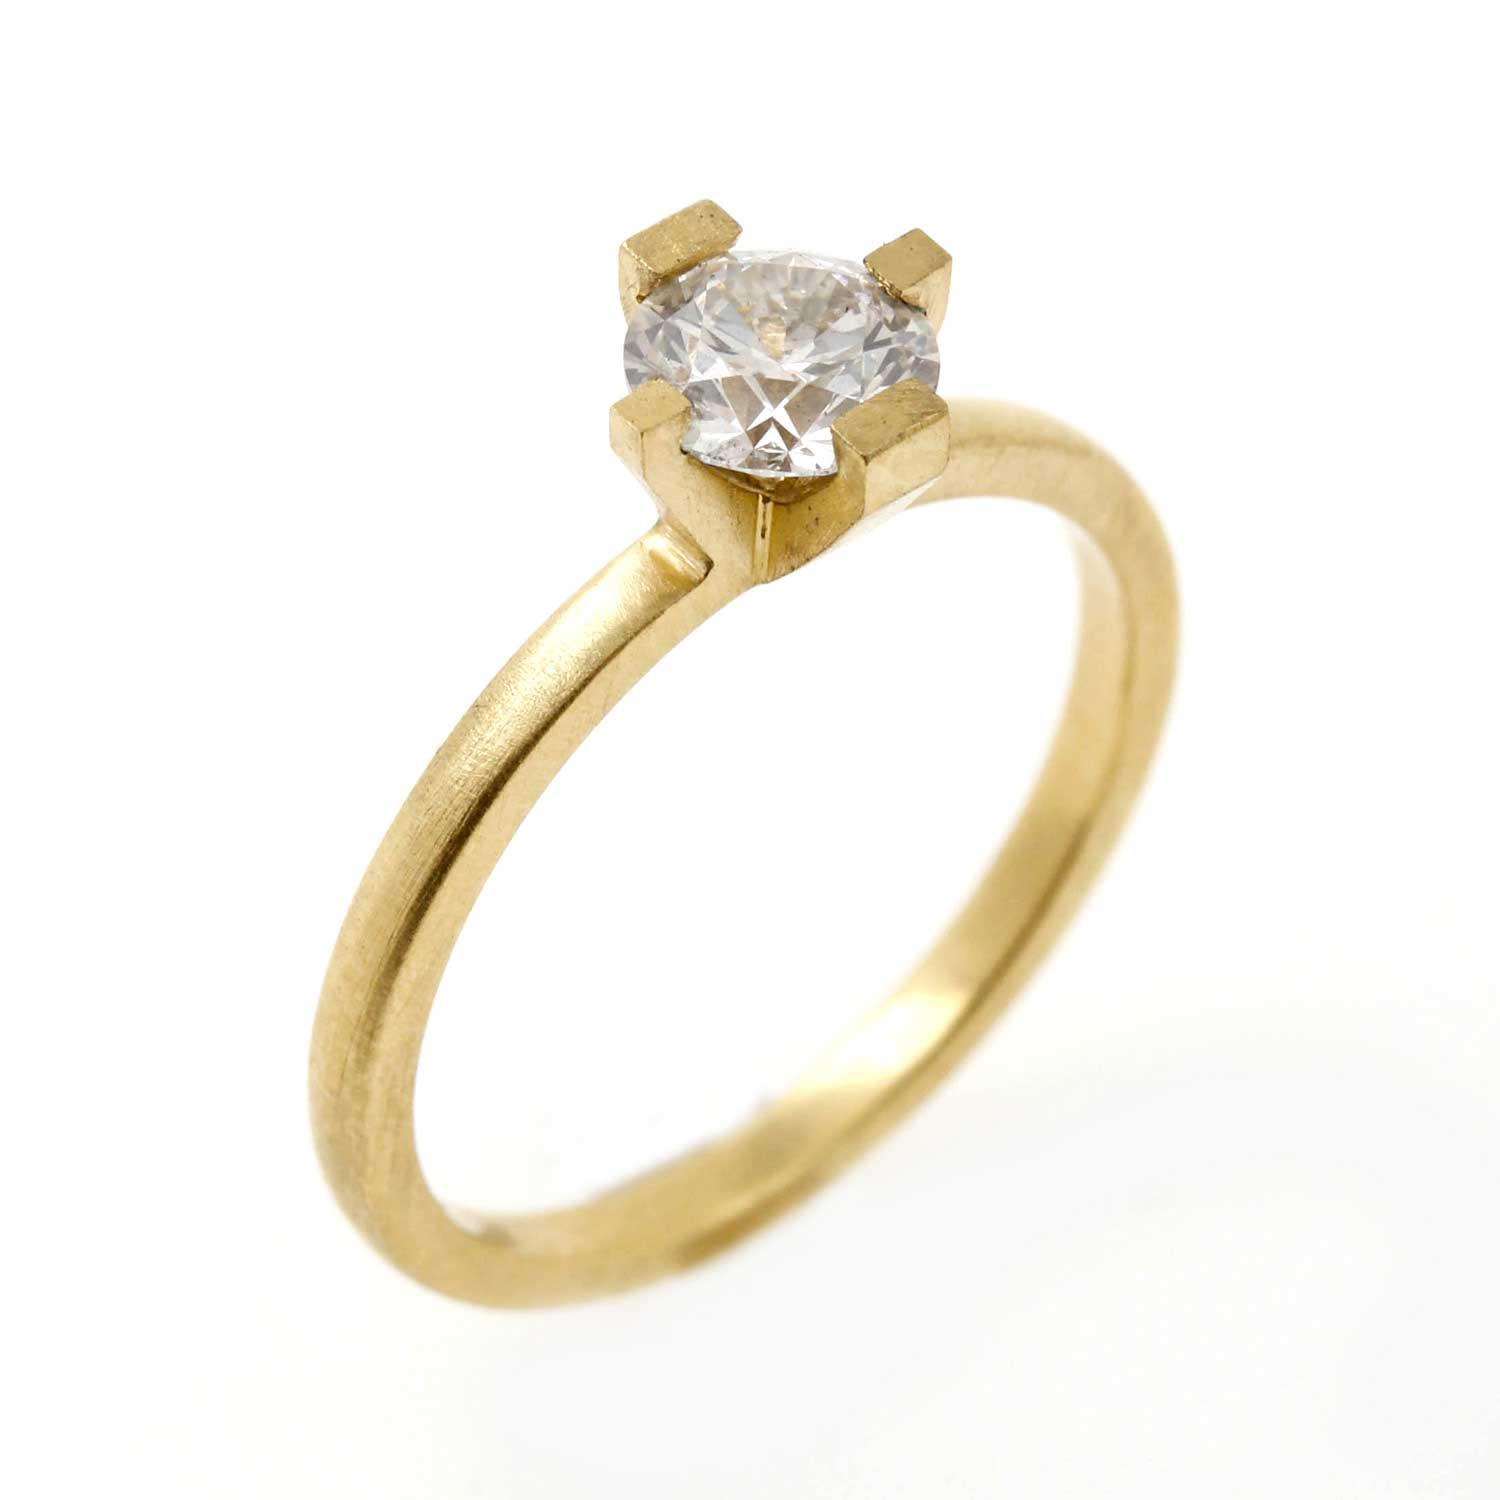 "Architectural Design - Architect Tom wanted us to create a Brutalist inspired engagement ring, with pared back, clean lines and a matt finish to reflect the beauty of the diamond.""I would highly recommend Lee to anyone looking for a beautiful and bespoke engagement ring."" - Tom Saunders"